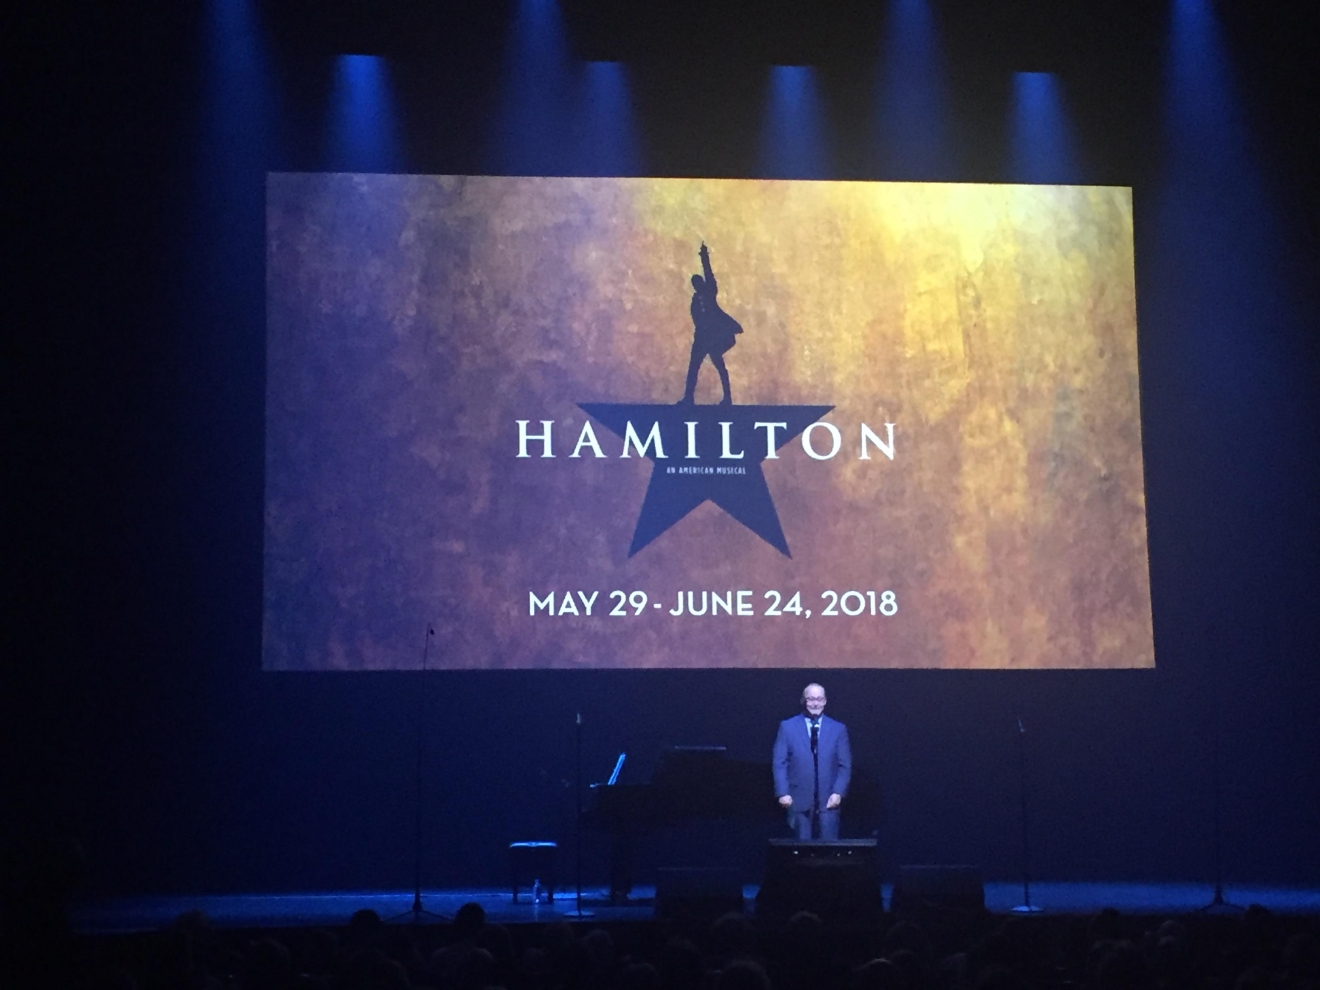 Smith Center President and CEO Myron Martin introduced upcoming hit musical Hamilton during the Smith Center for the Performing Arts 2017-2018 Broadway series preview Tuesday, Feb. 28, 2017, in Reynolds Hall. (Jami Seymore | KSNV)